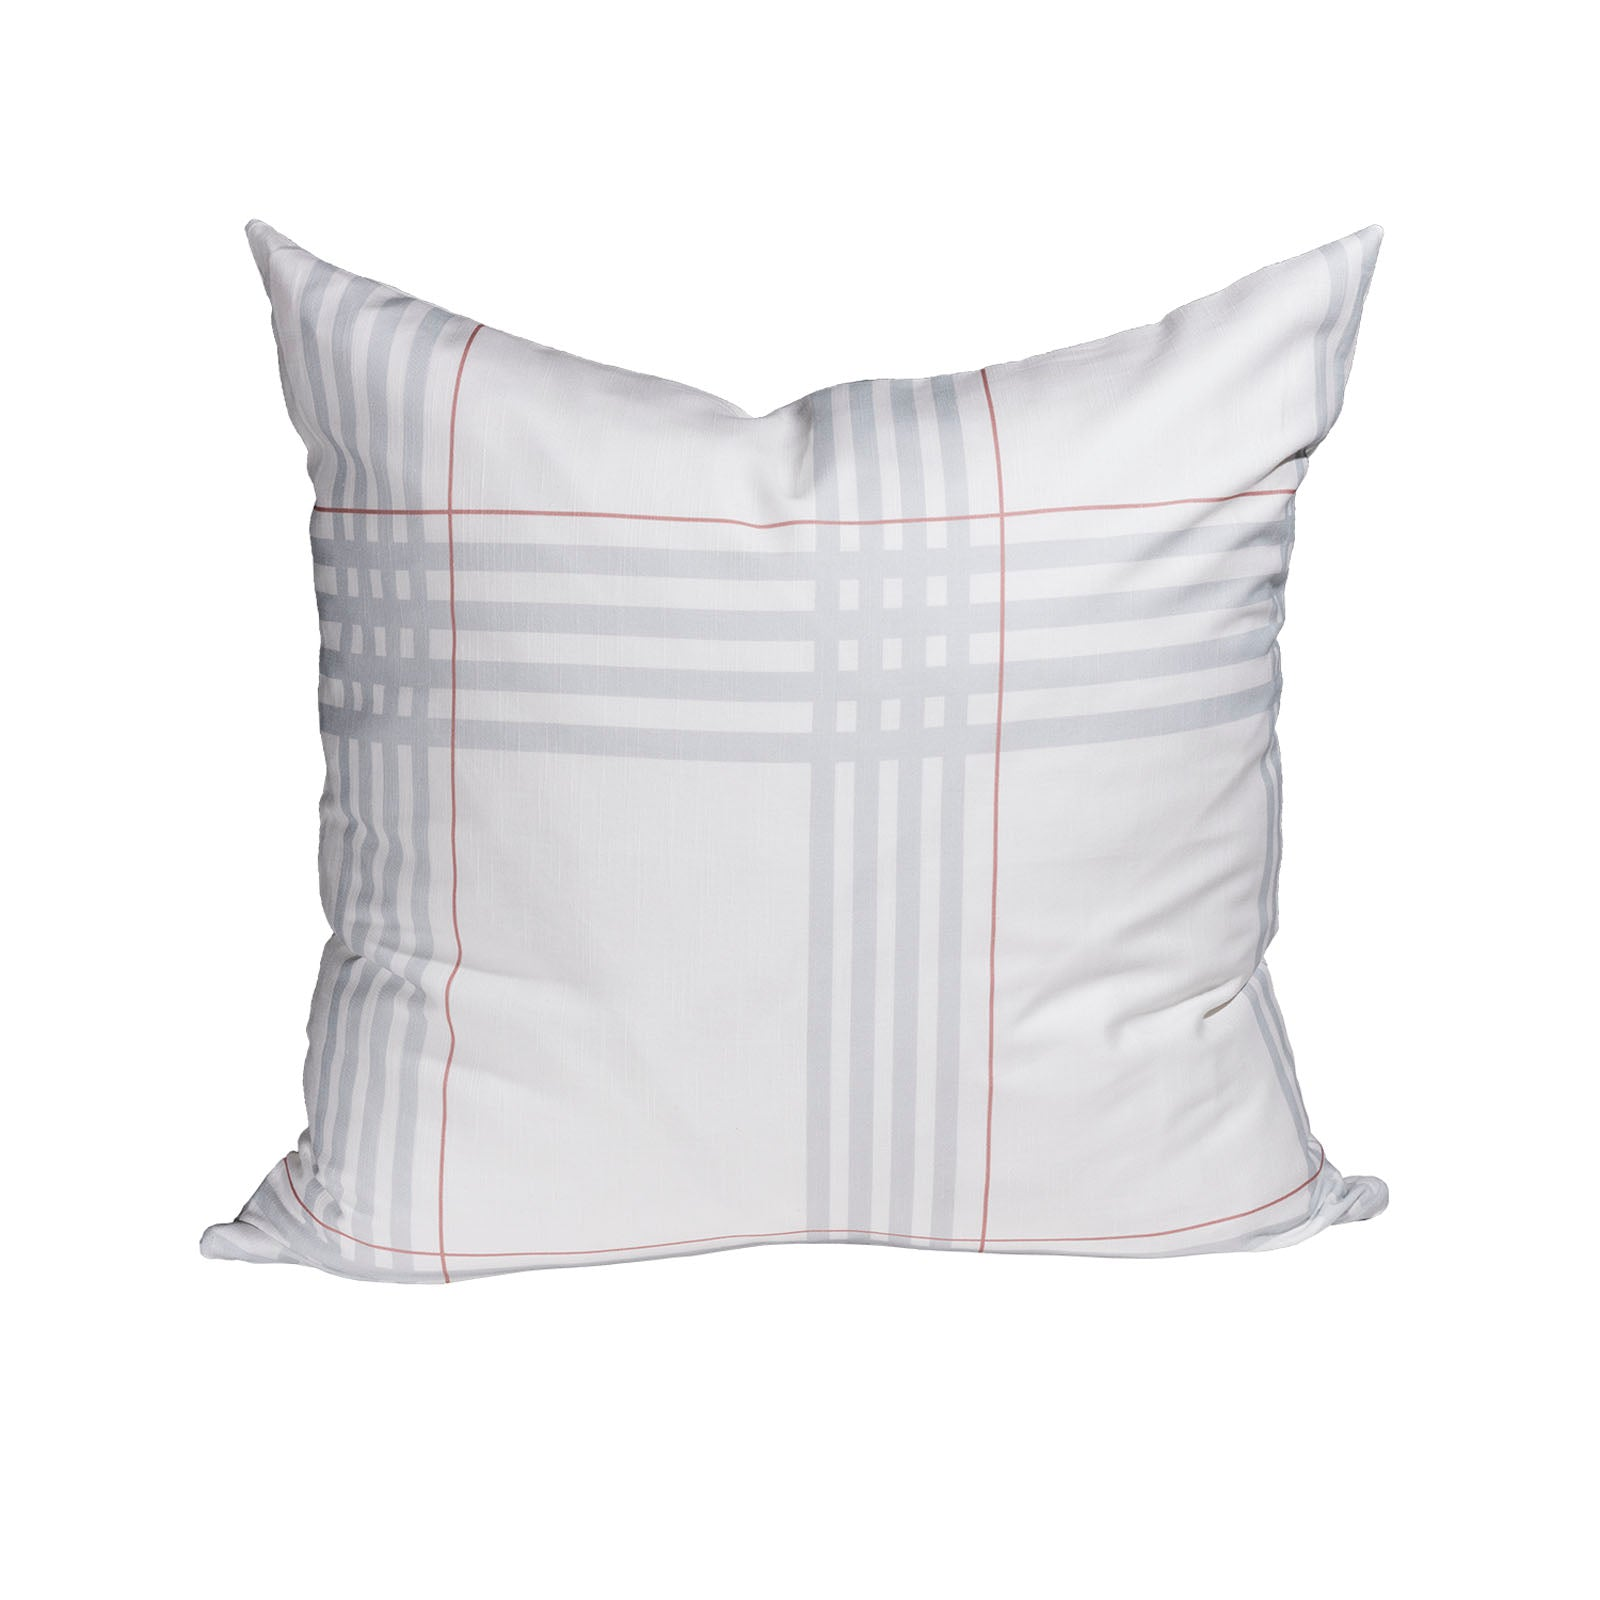 Johnnie Pillow in Light Blue